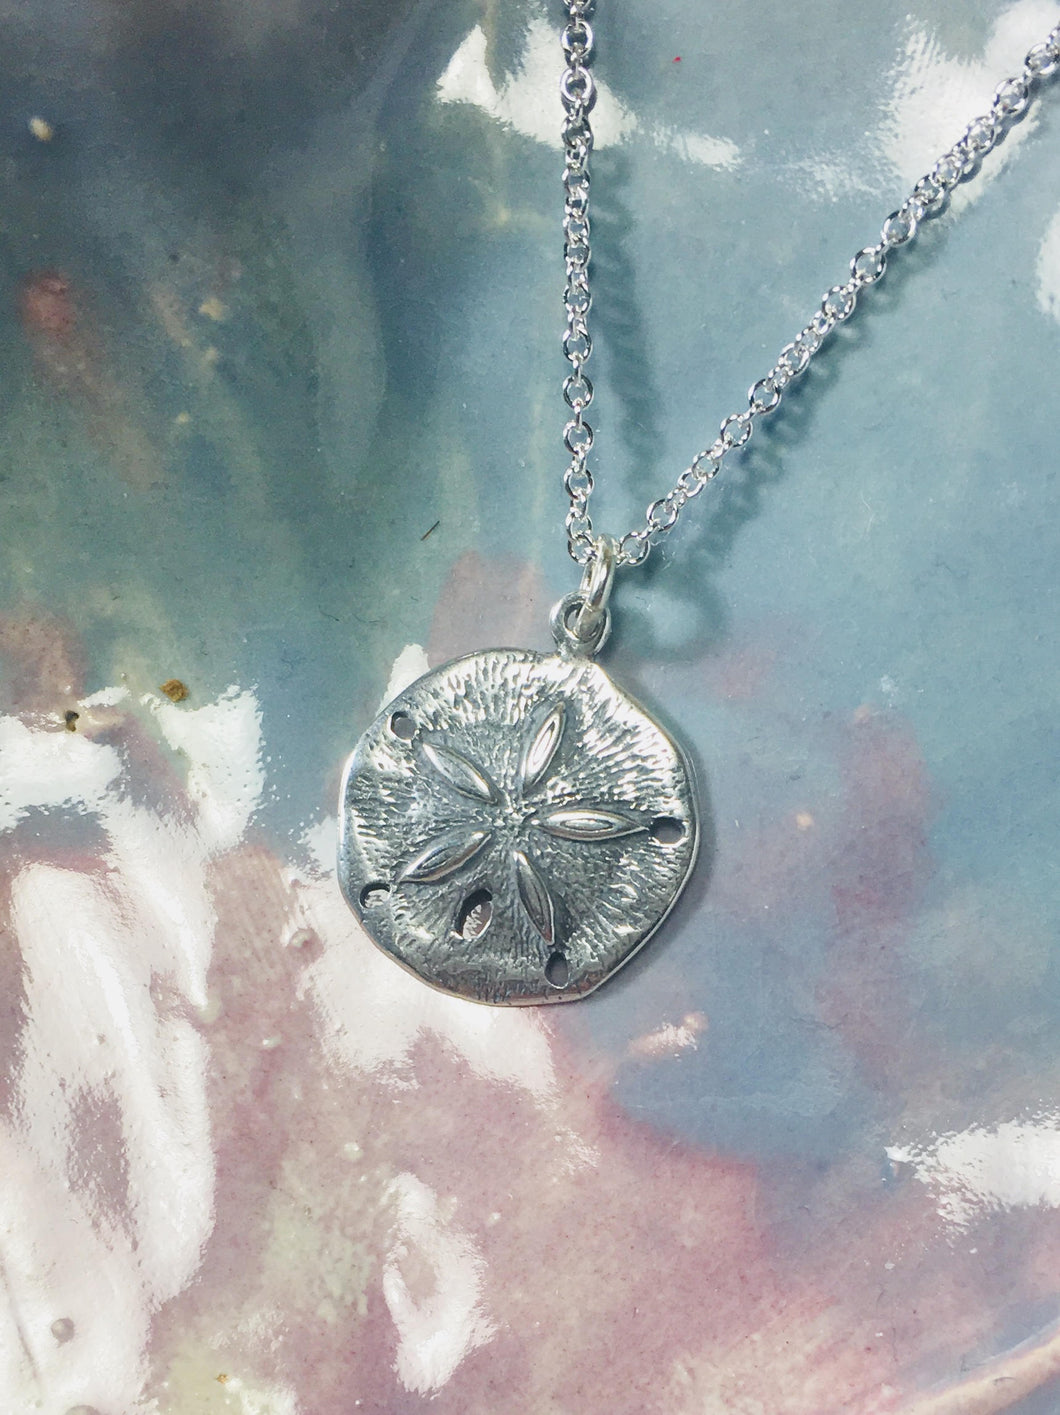 Sand Dollar Necklace 925 Sterling Silver Pendant, Beach Jewelry - MiShelli